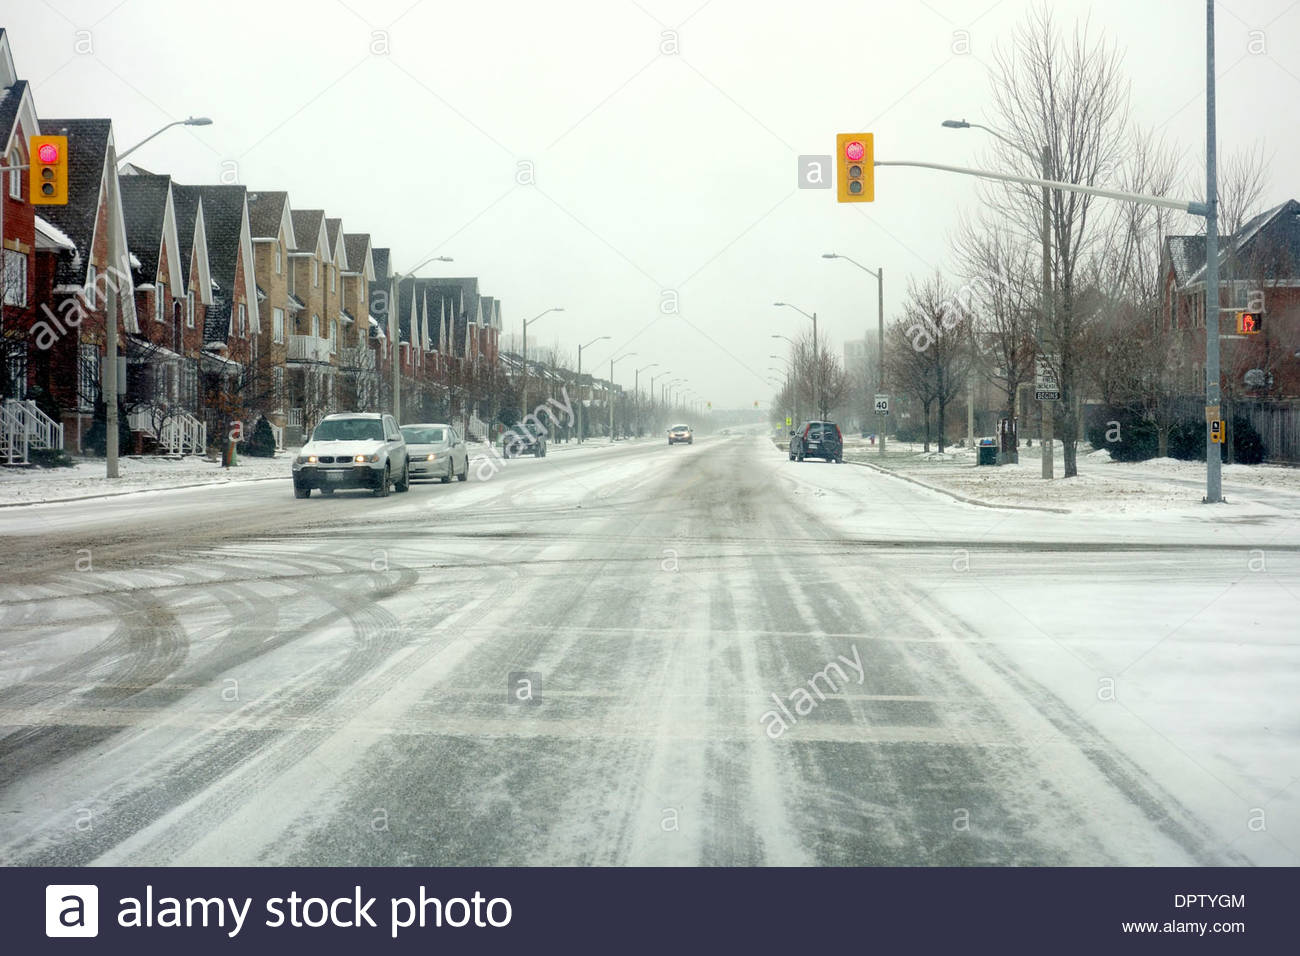 adverse driving conditions in a winter day outside toronto canada stock photo alamy https www alamy com adverse driving conditions in a winter day outside toronto canada image65702020 html